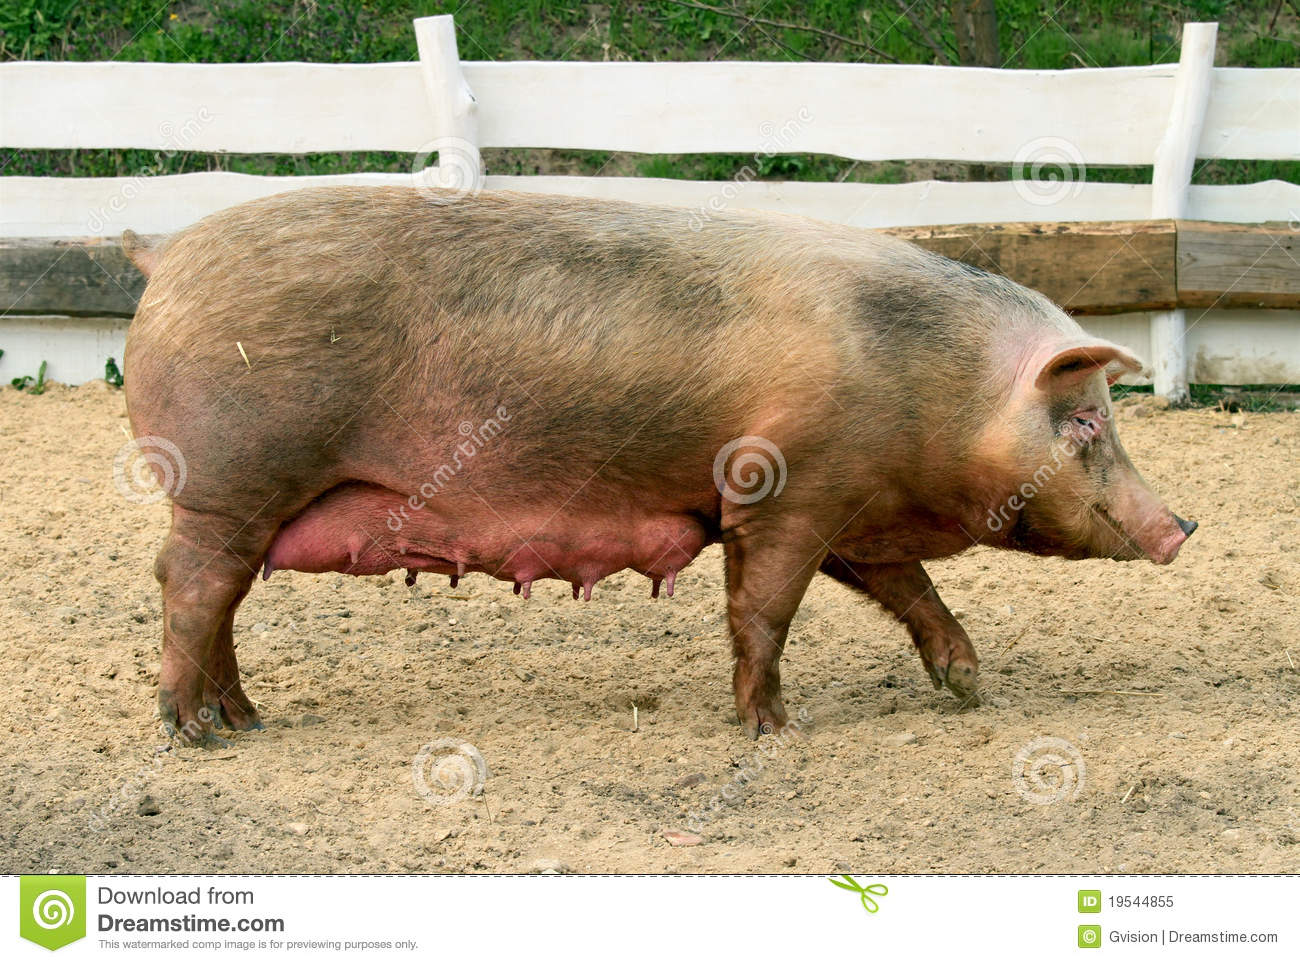 Female Pig Royalty Free Stock Photo - Image: 19544855